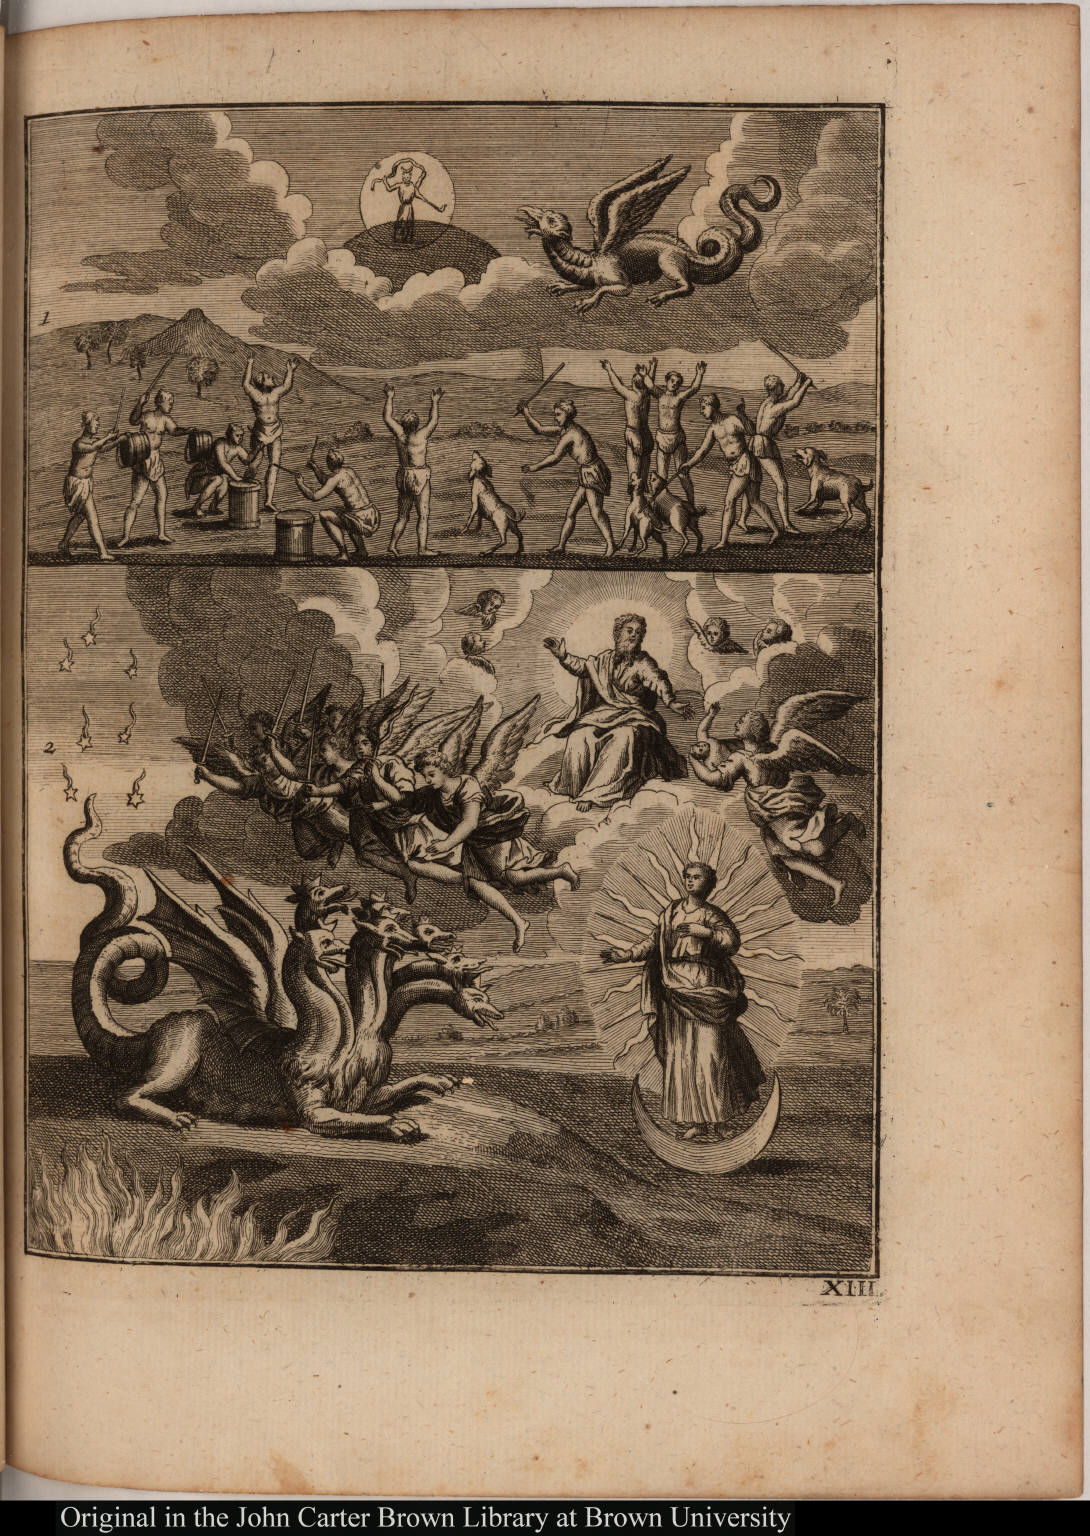 [(top) Native Americans worship during an eclipse of the sun. (bottom) A revelation from Jehovah]